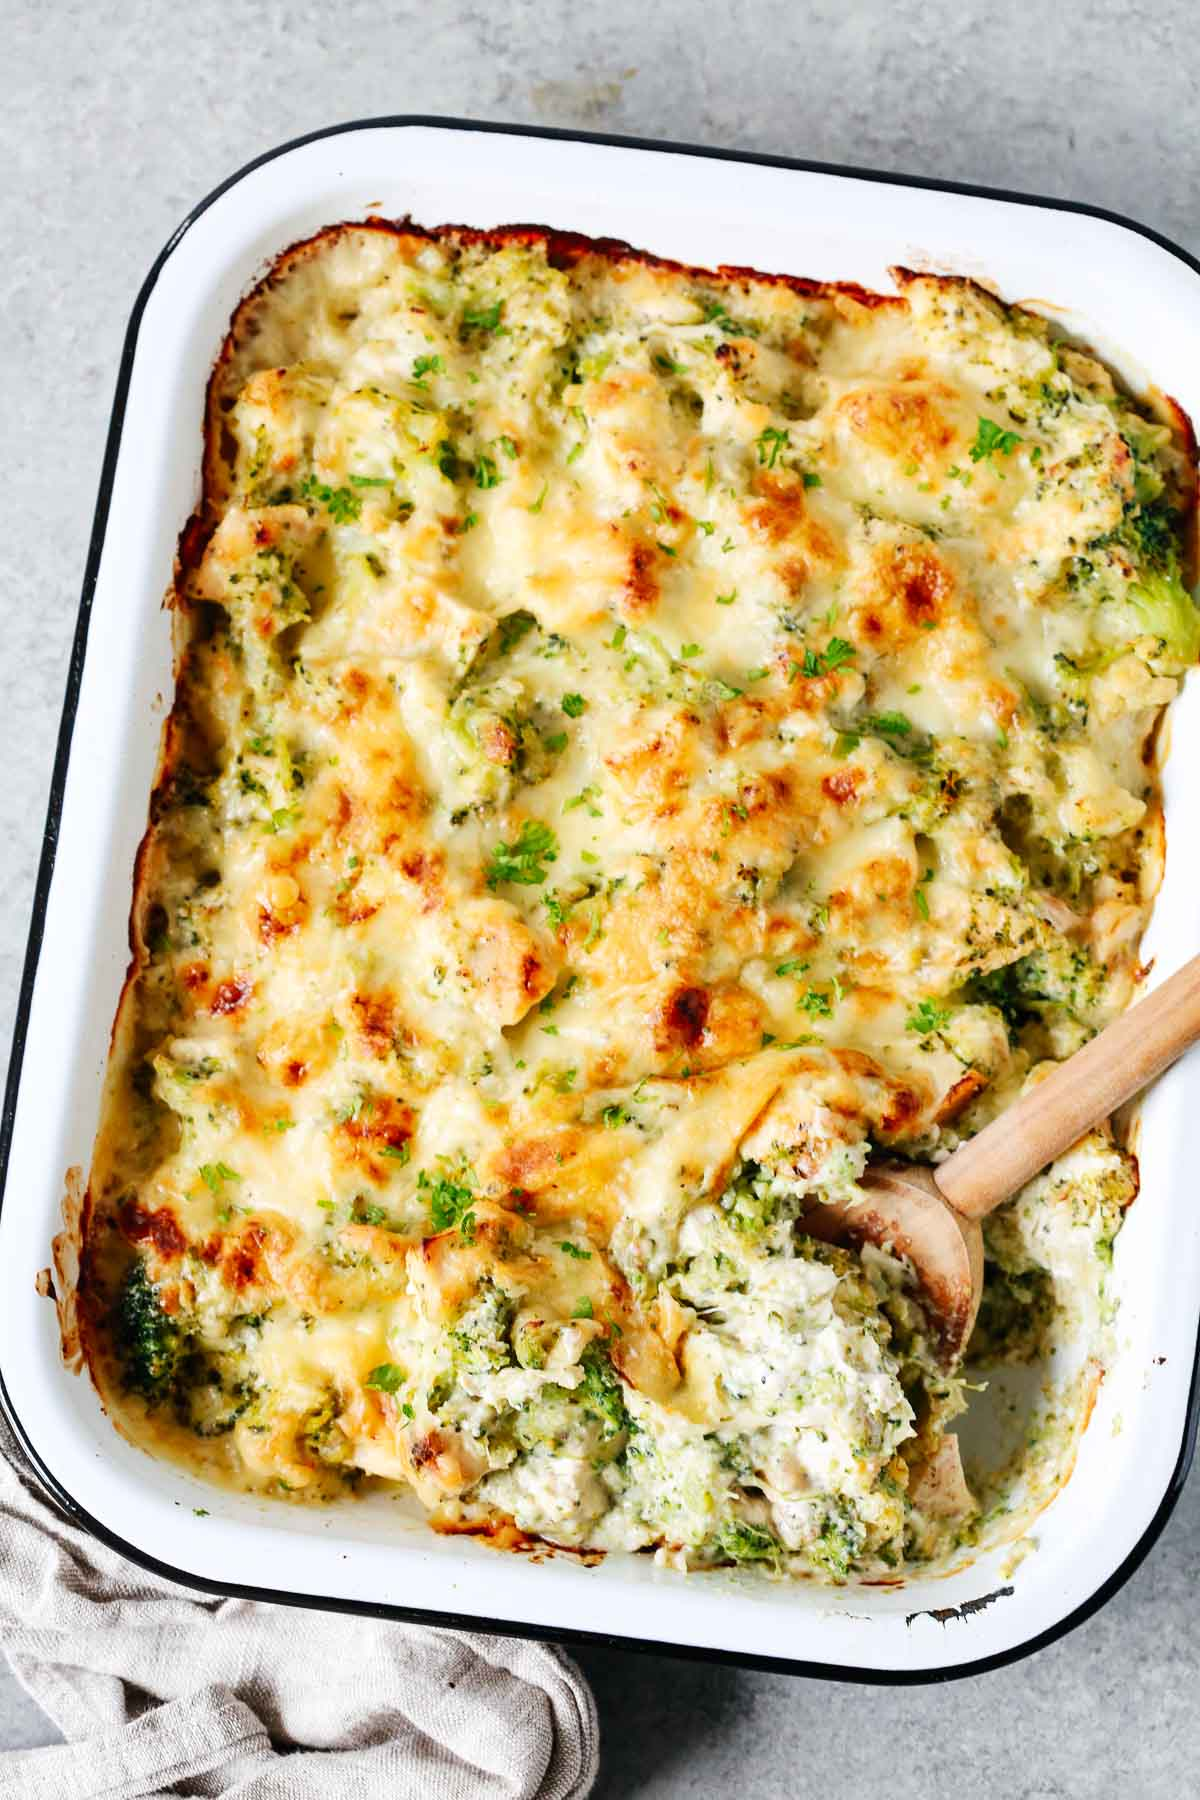 Overhead photo of a baking dish containing broccoli and cauliflower casserole.